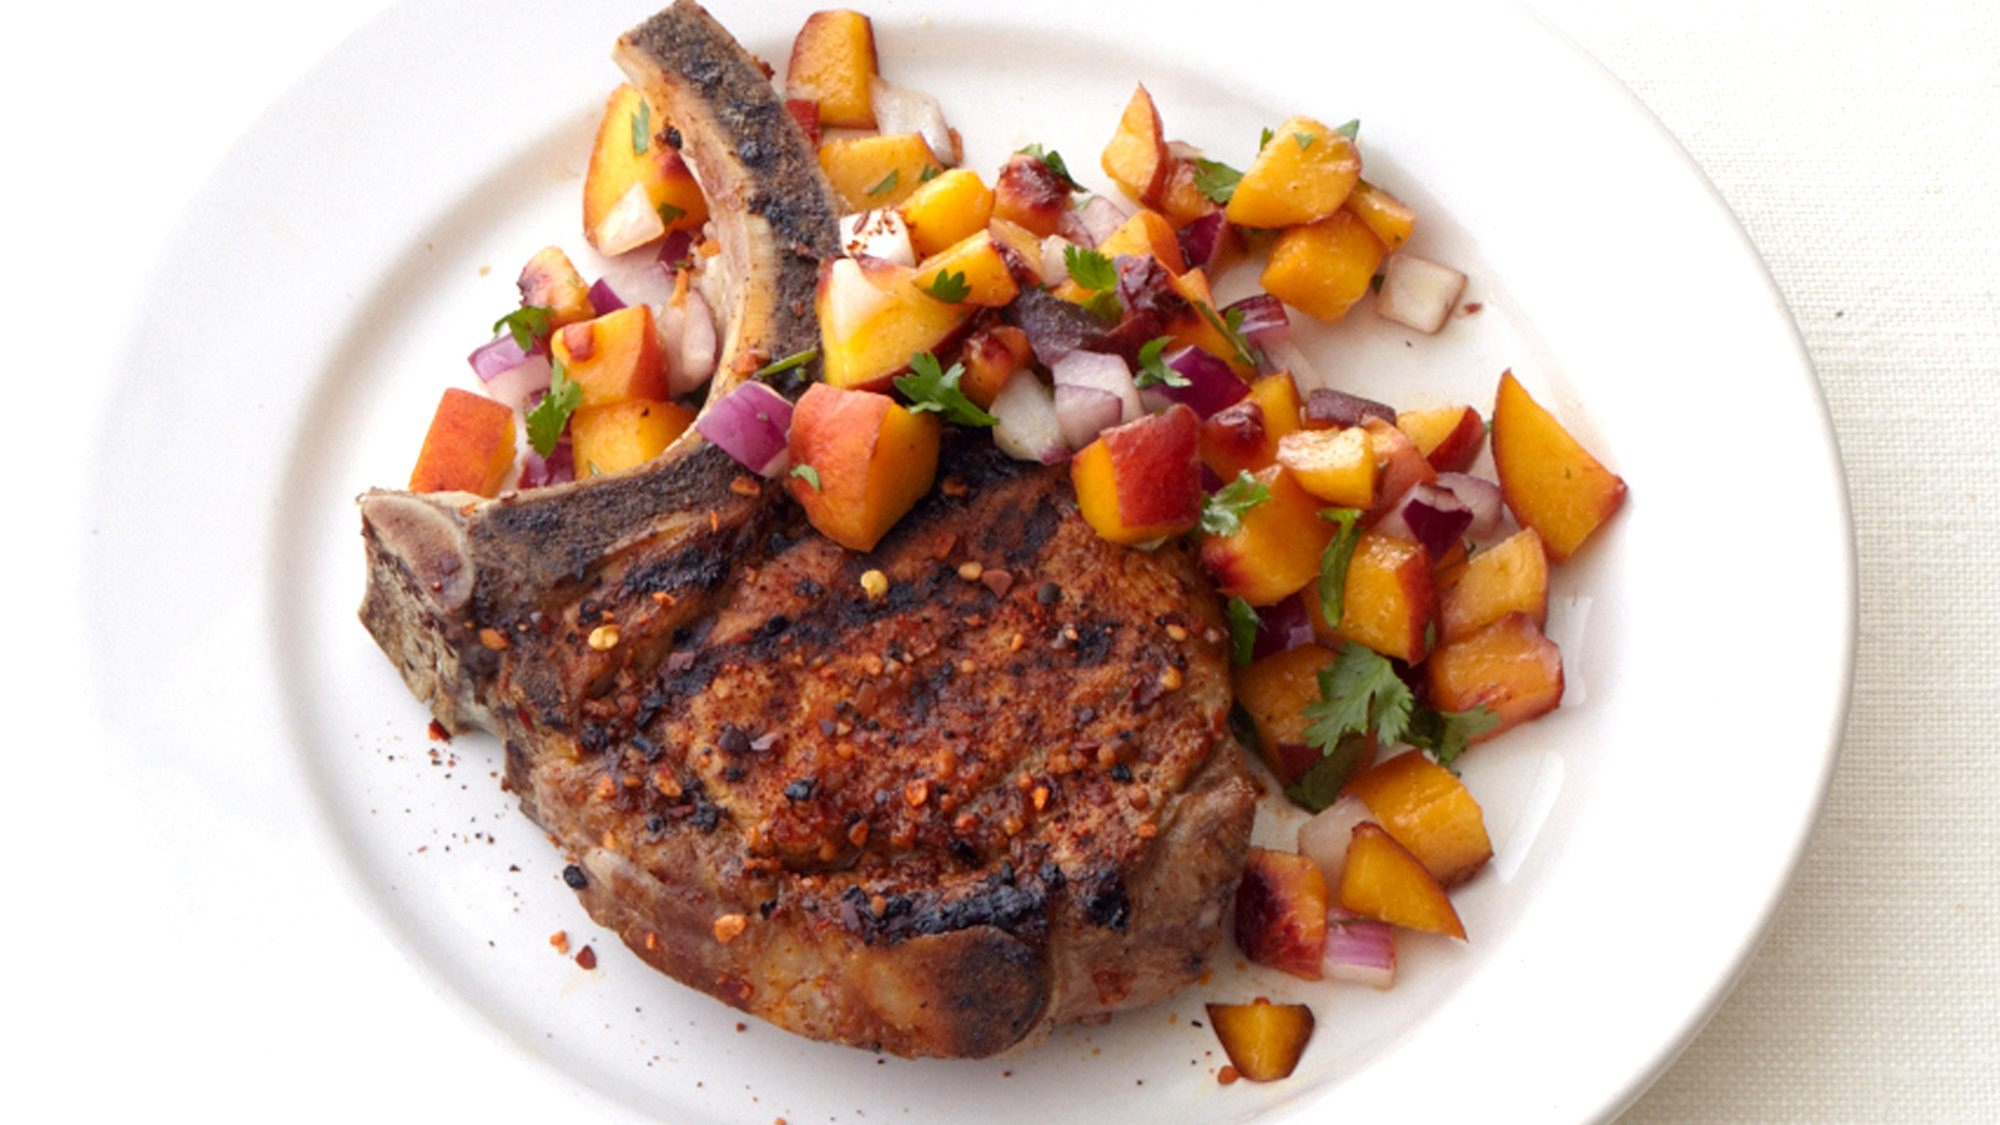 southwestern-spiced-pork-chops-with-peach-salsa.jpg